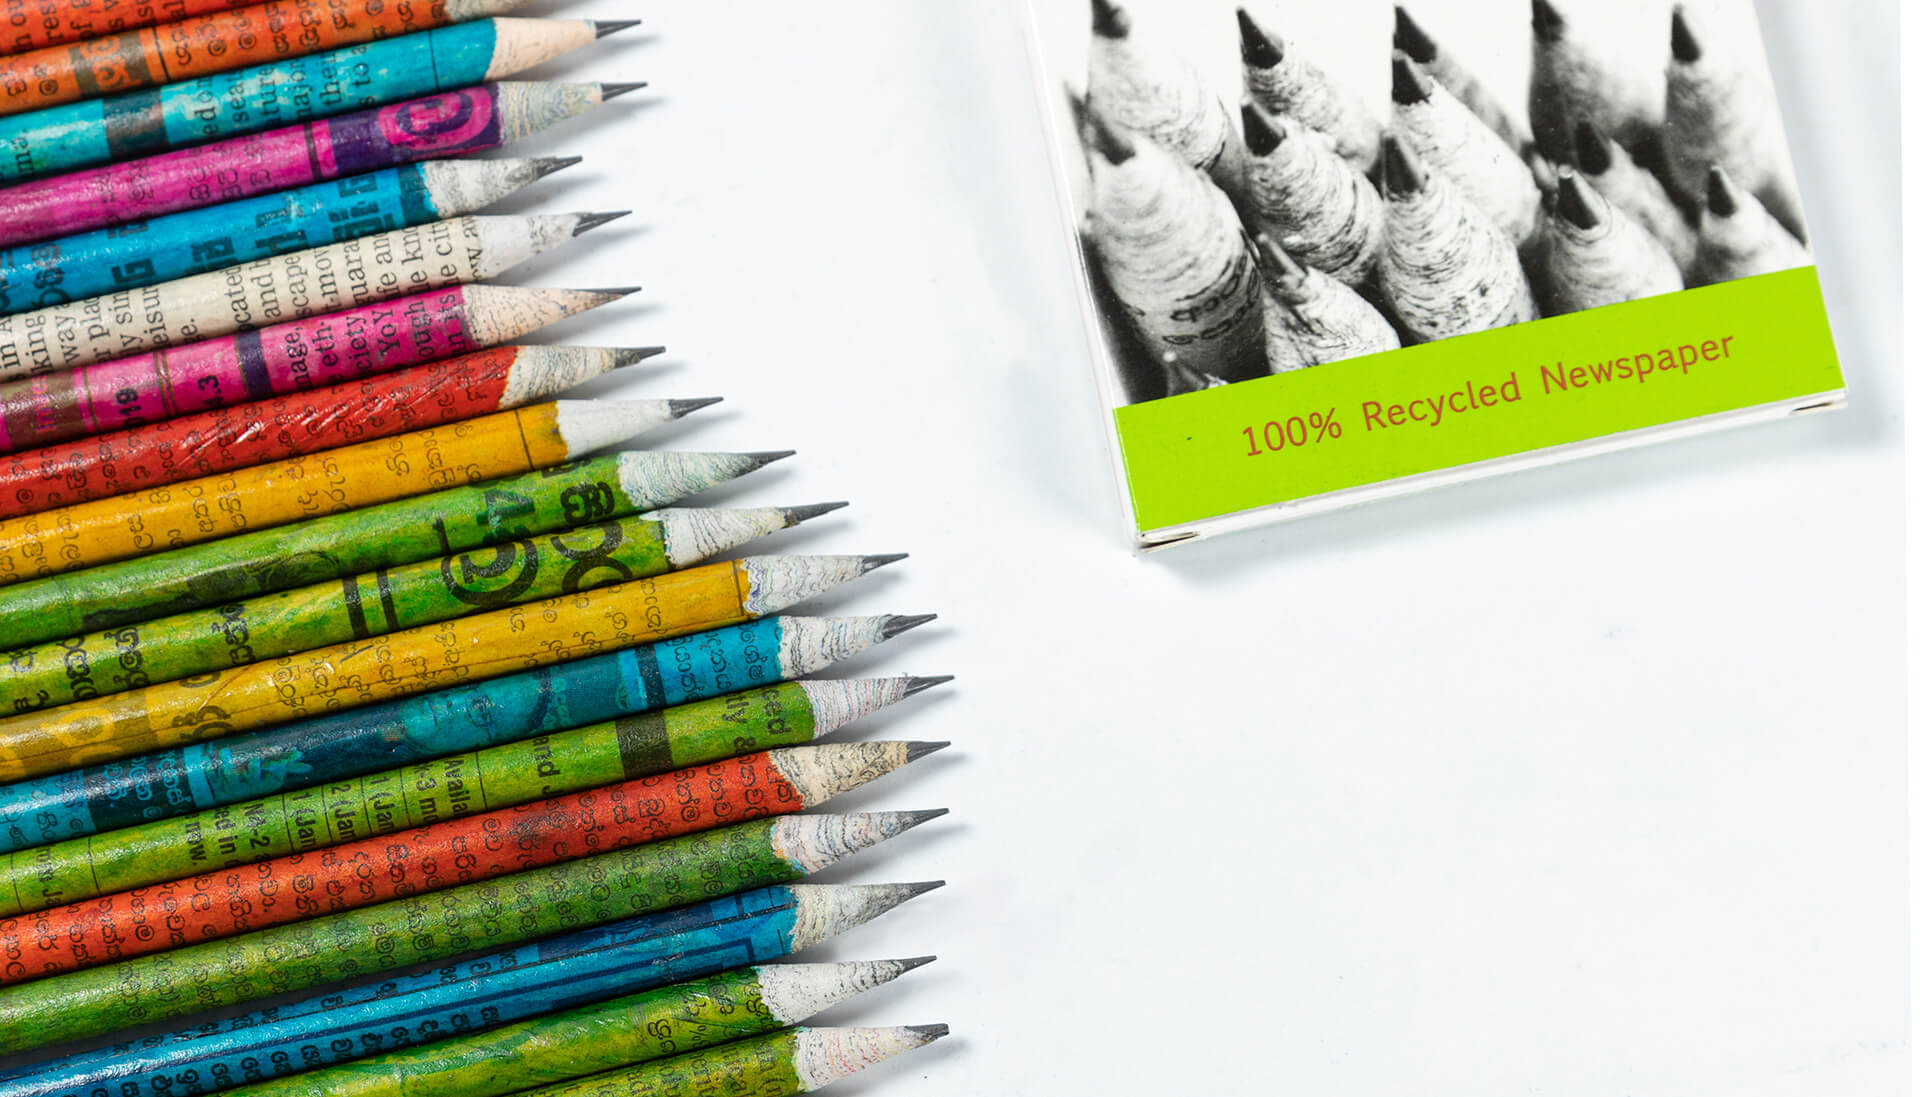 EBC Pencils | Made in Sri Lanka: Curated by Colomboscope | STIRworld